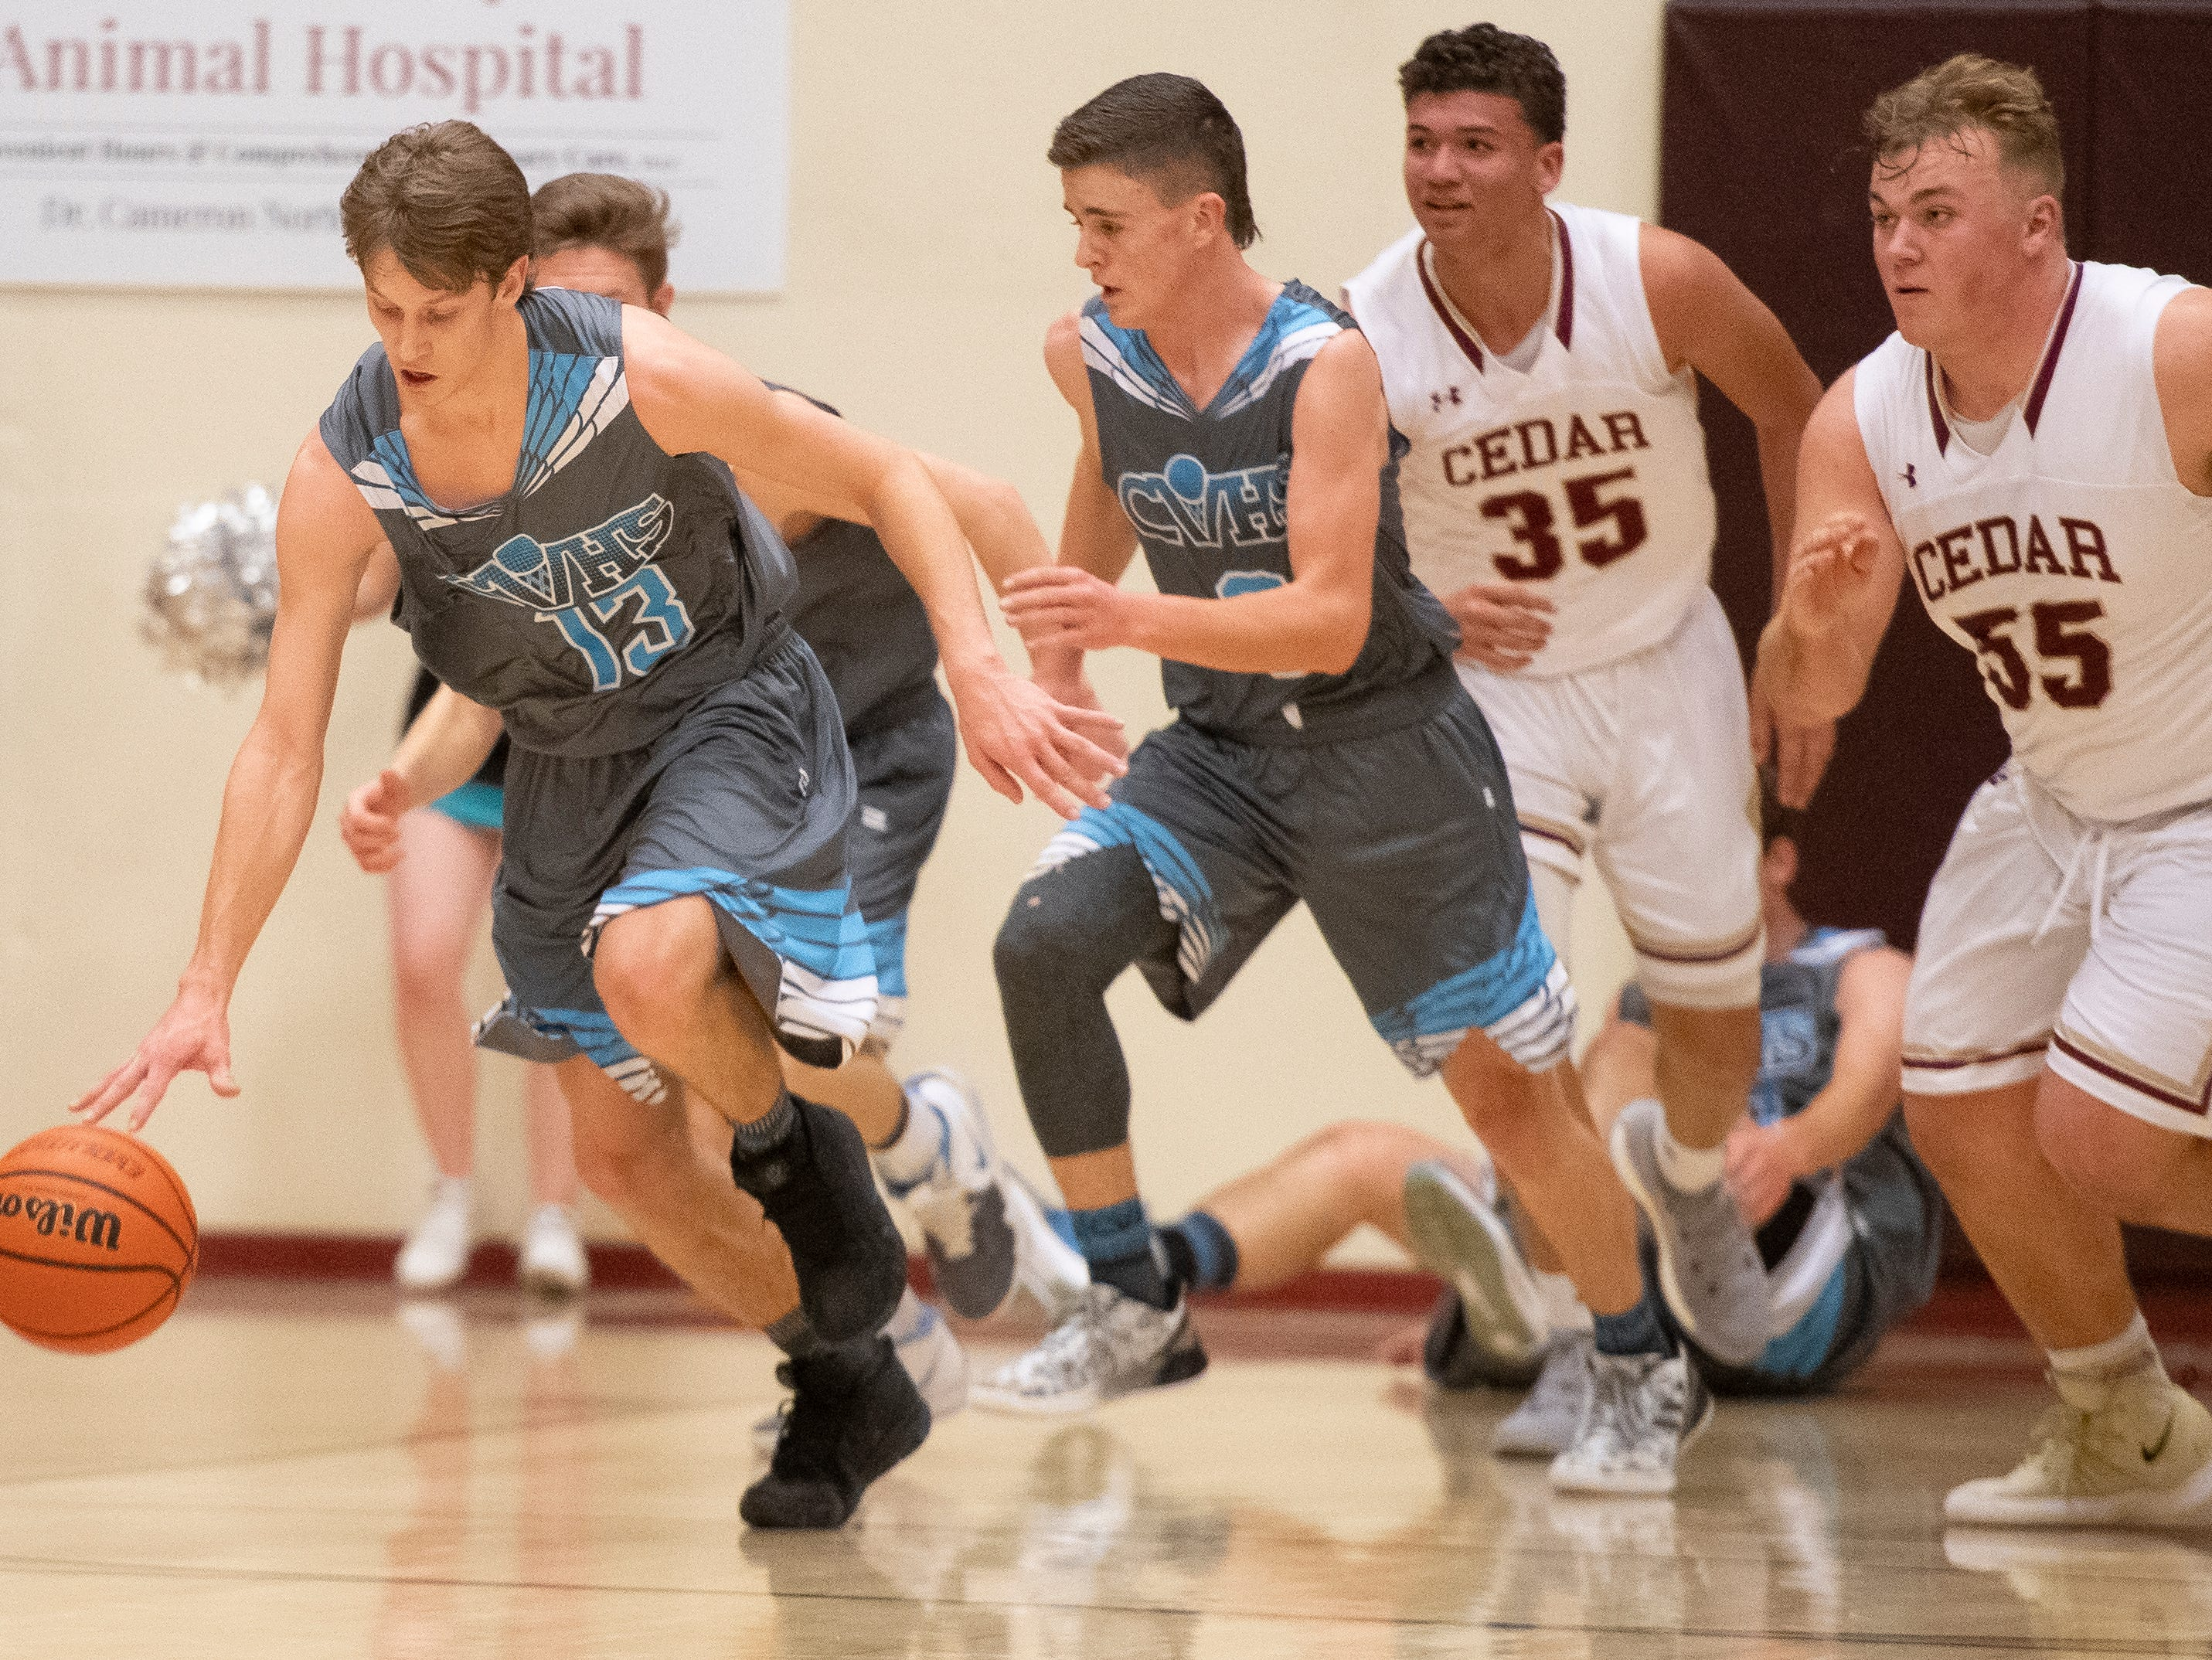 Canyon View High School senior Parker Holmes (13) steals the ball from Cedar at CHS Friday, January 11, 2019. Canyon View won, 61-56.